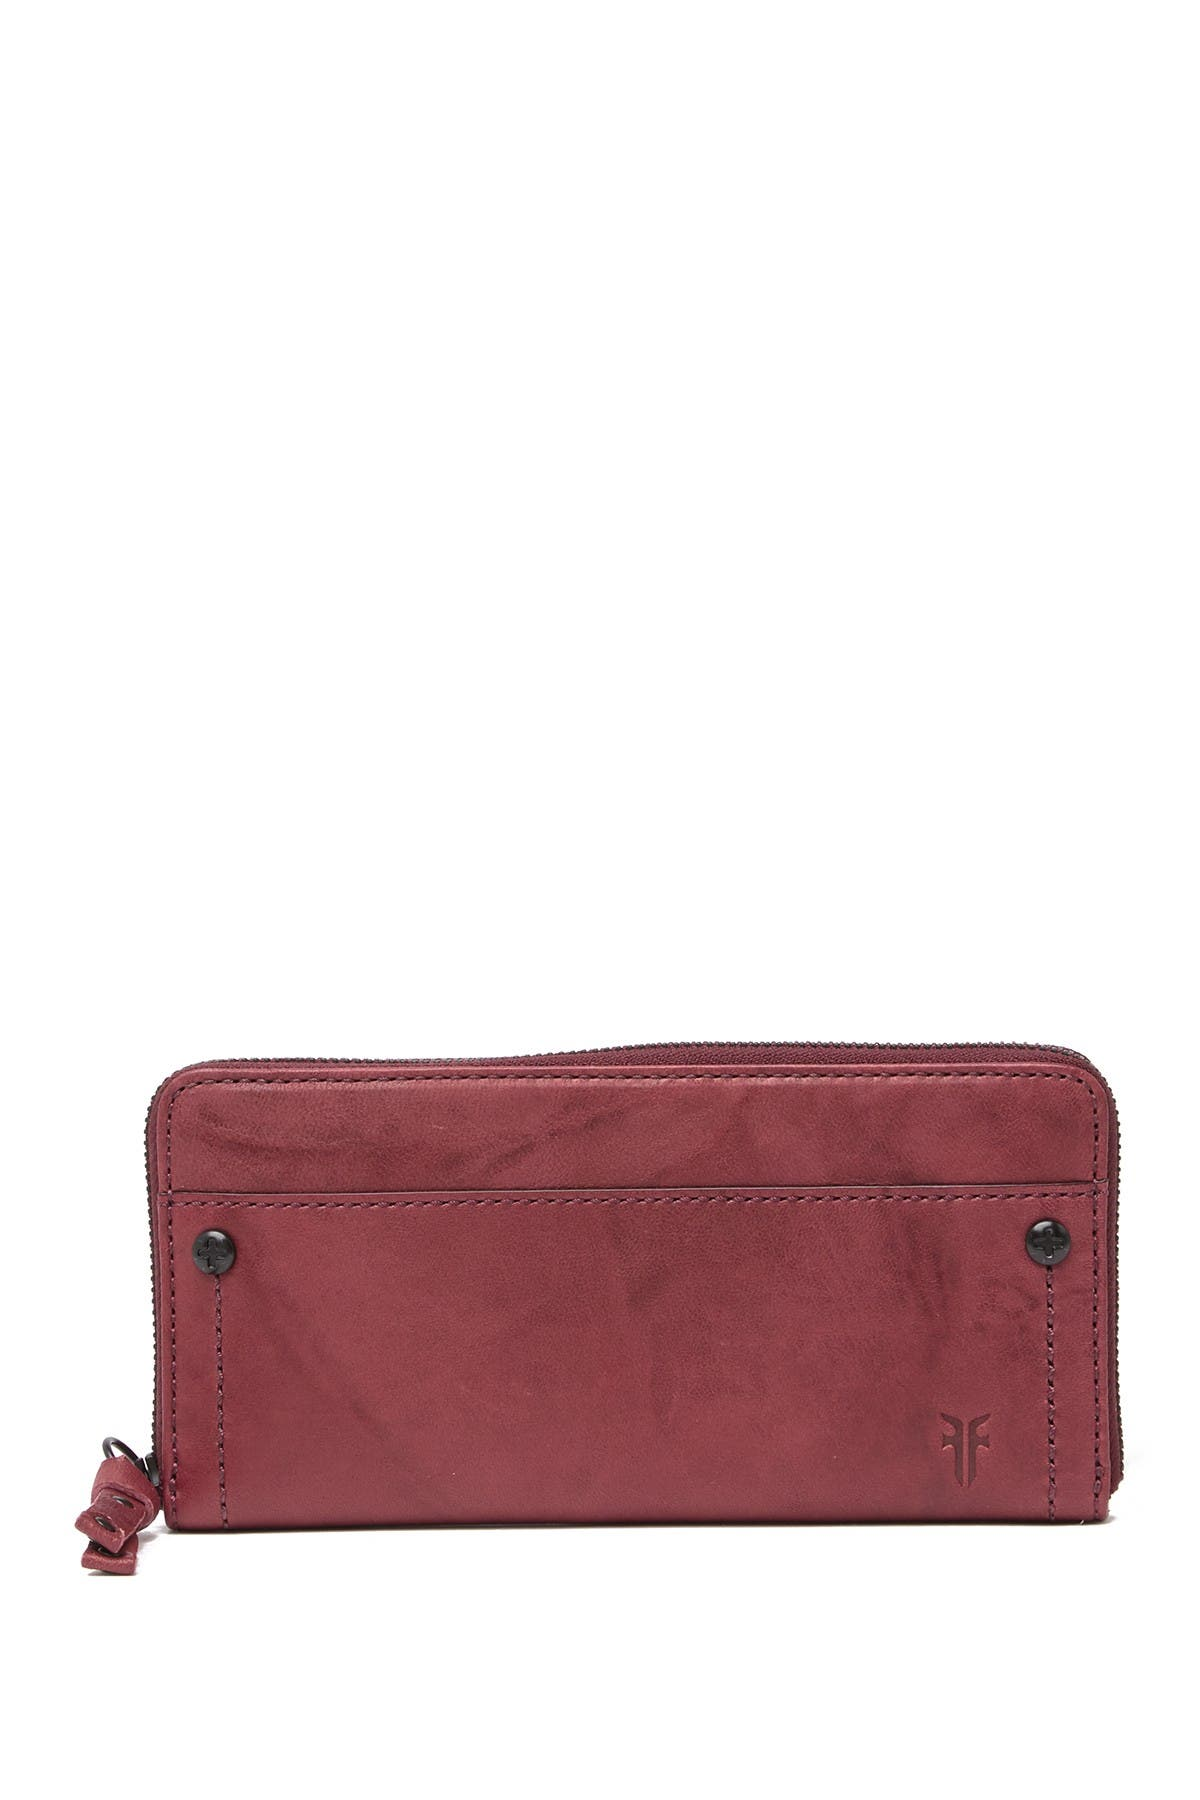 Image of Frye Demi Continental Zip Around Wallet